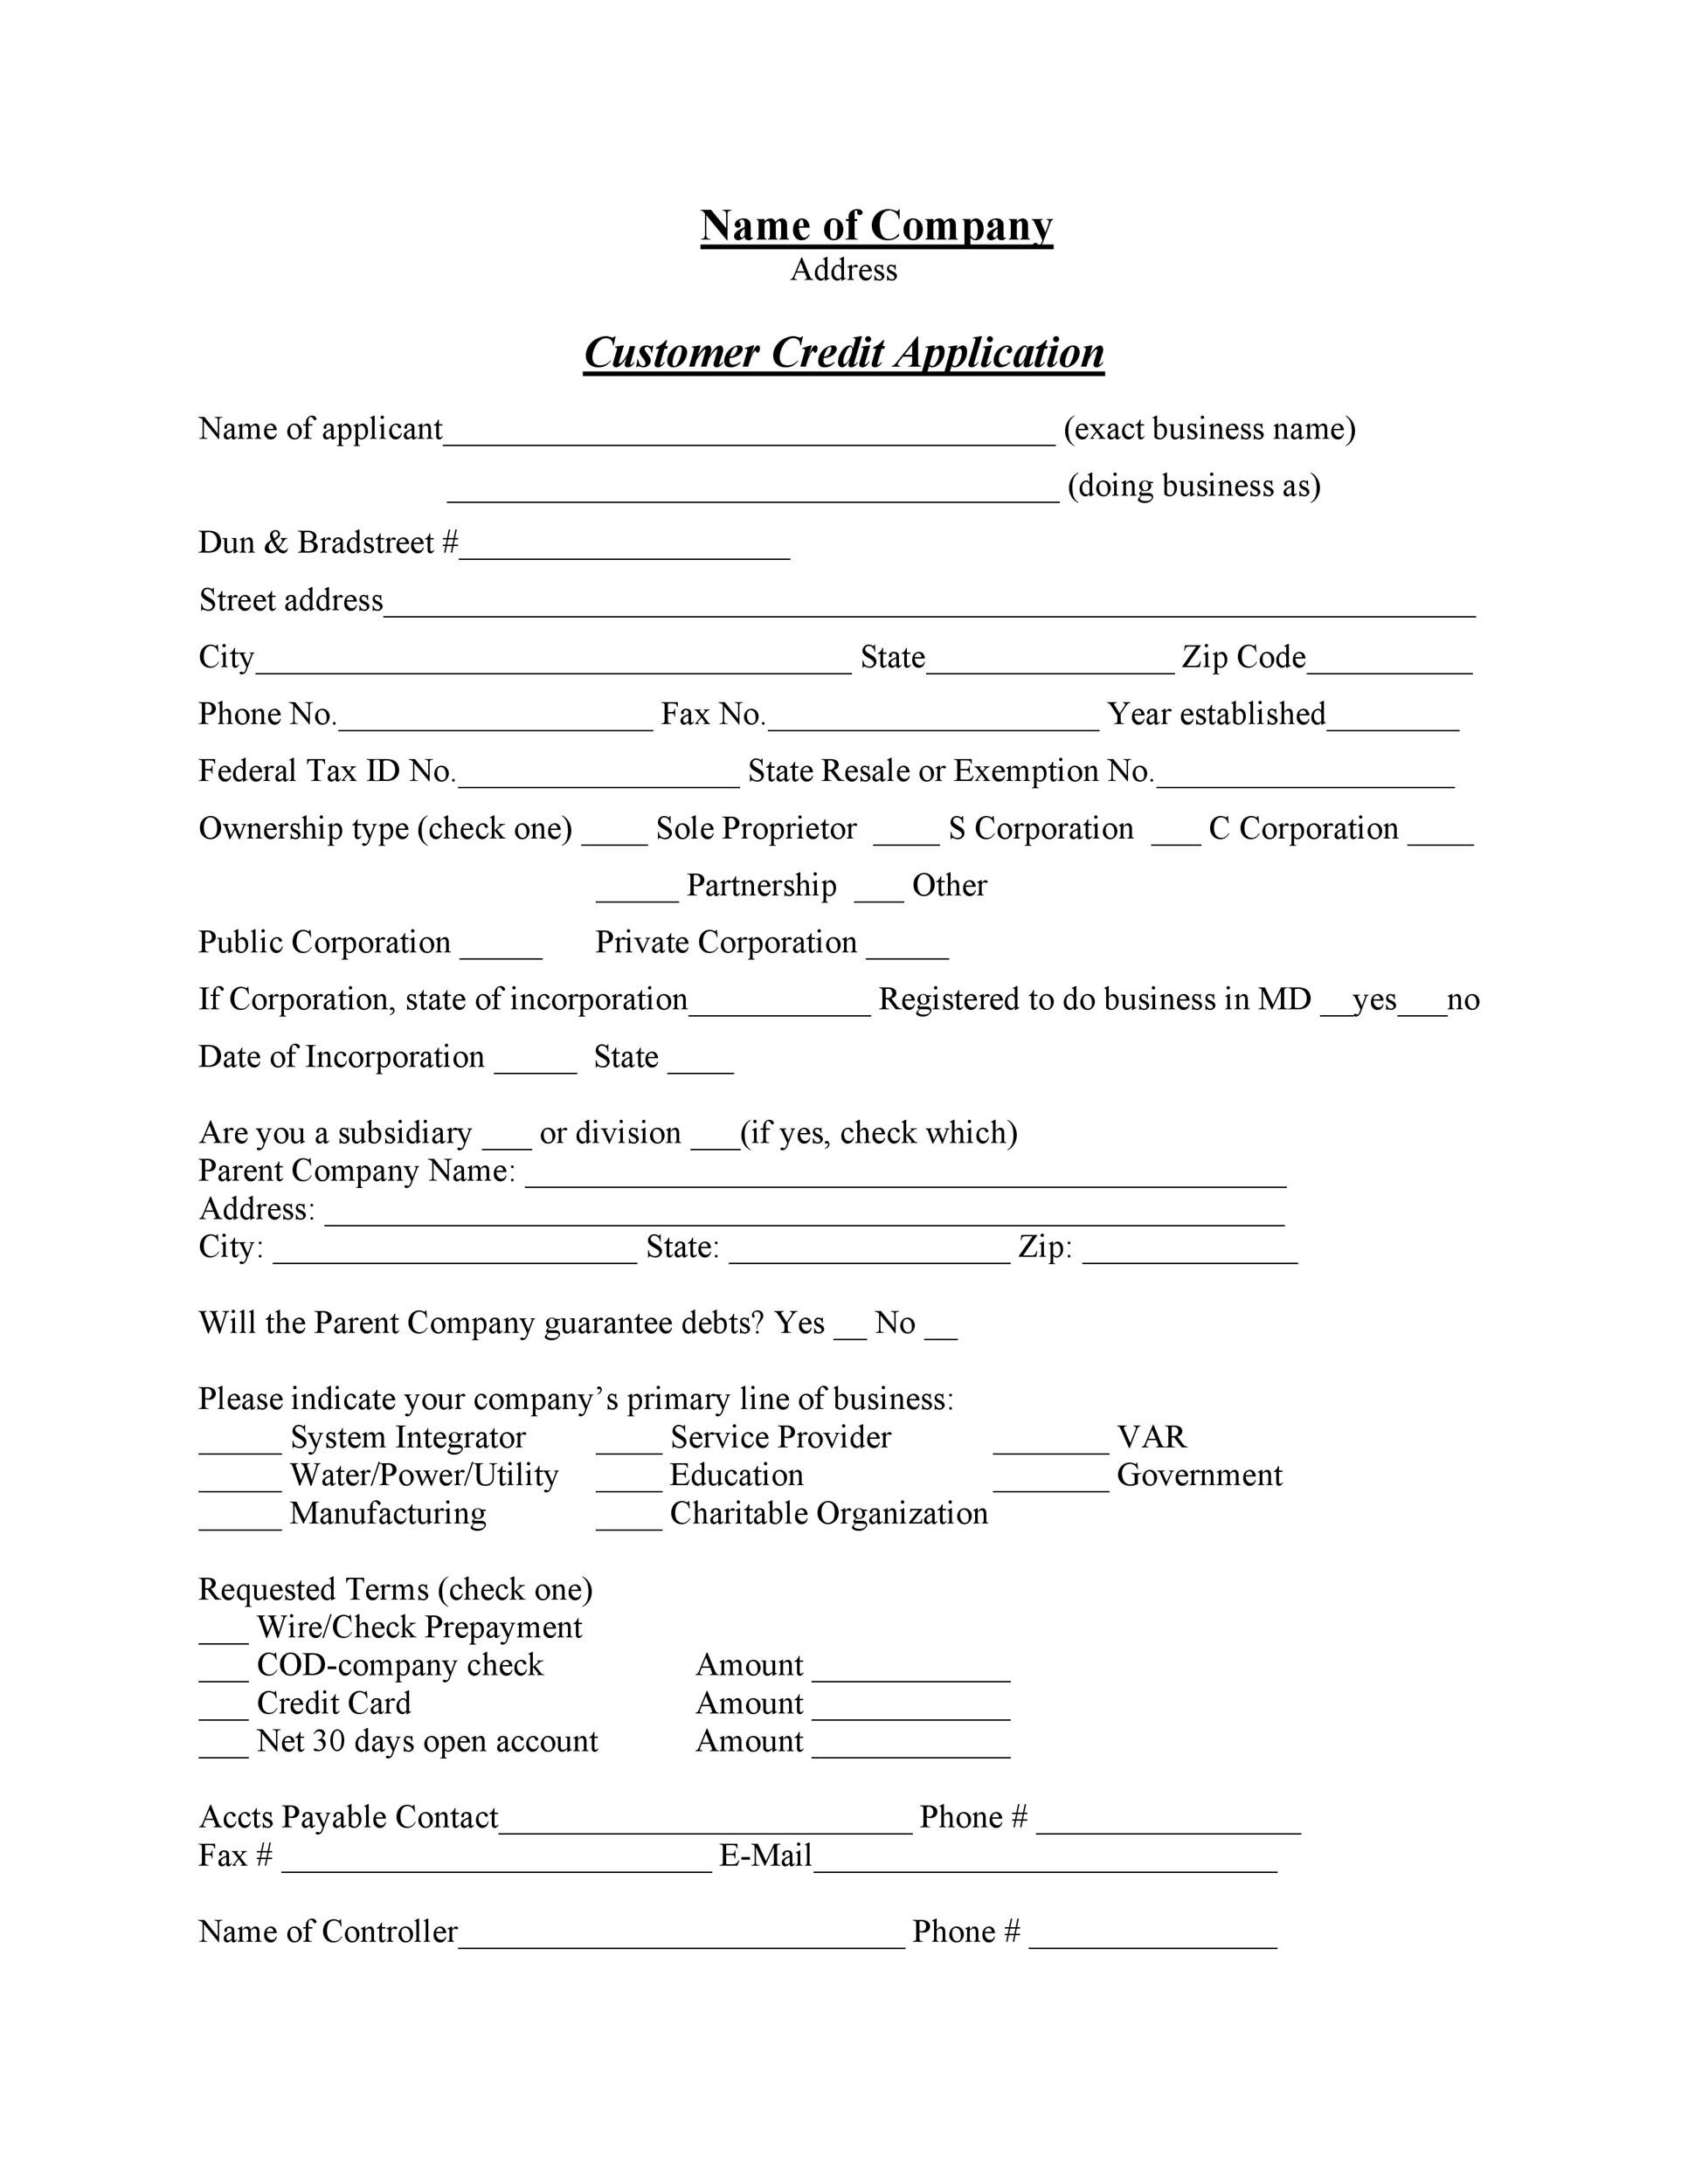 40 free credit application form templates samples printable credit application form 08 cheaphphosting